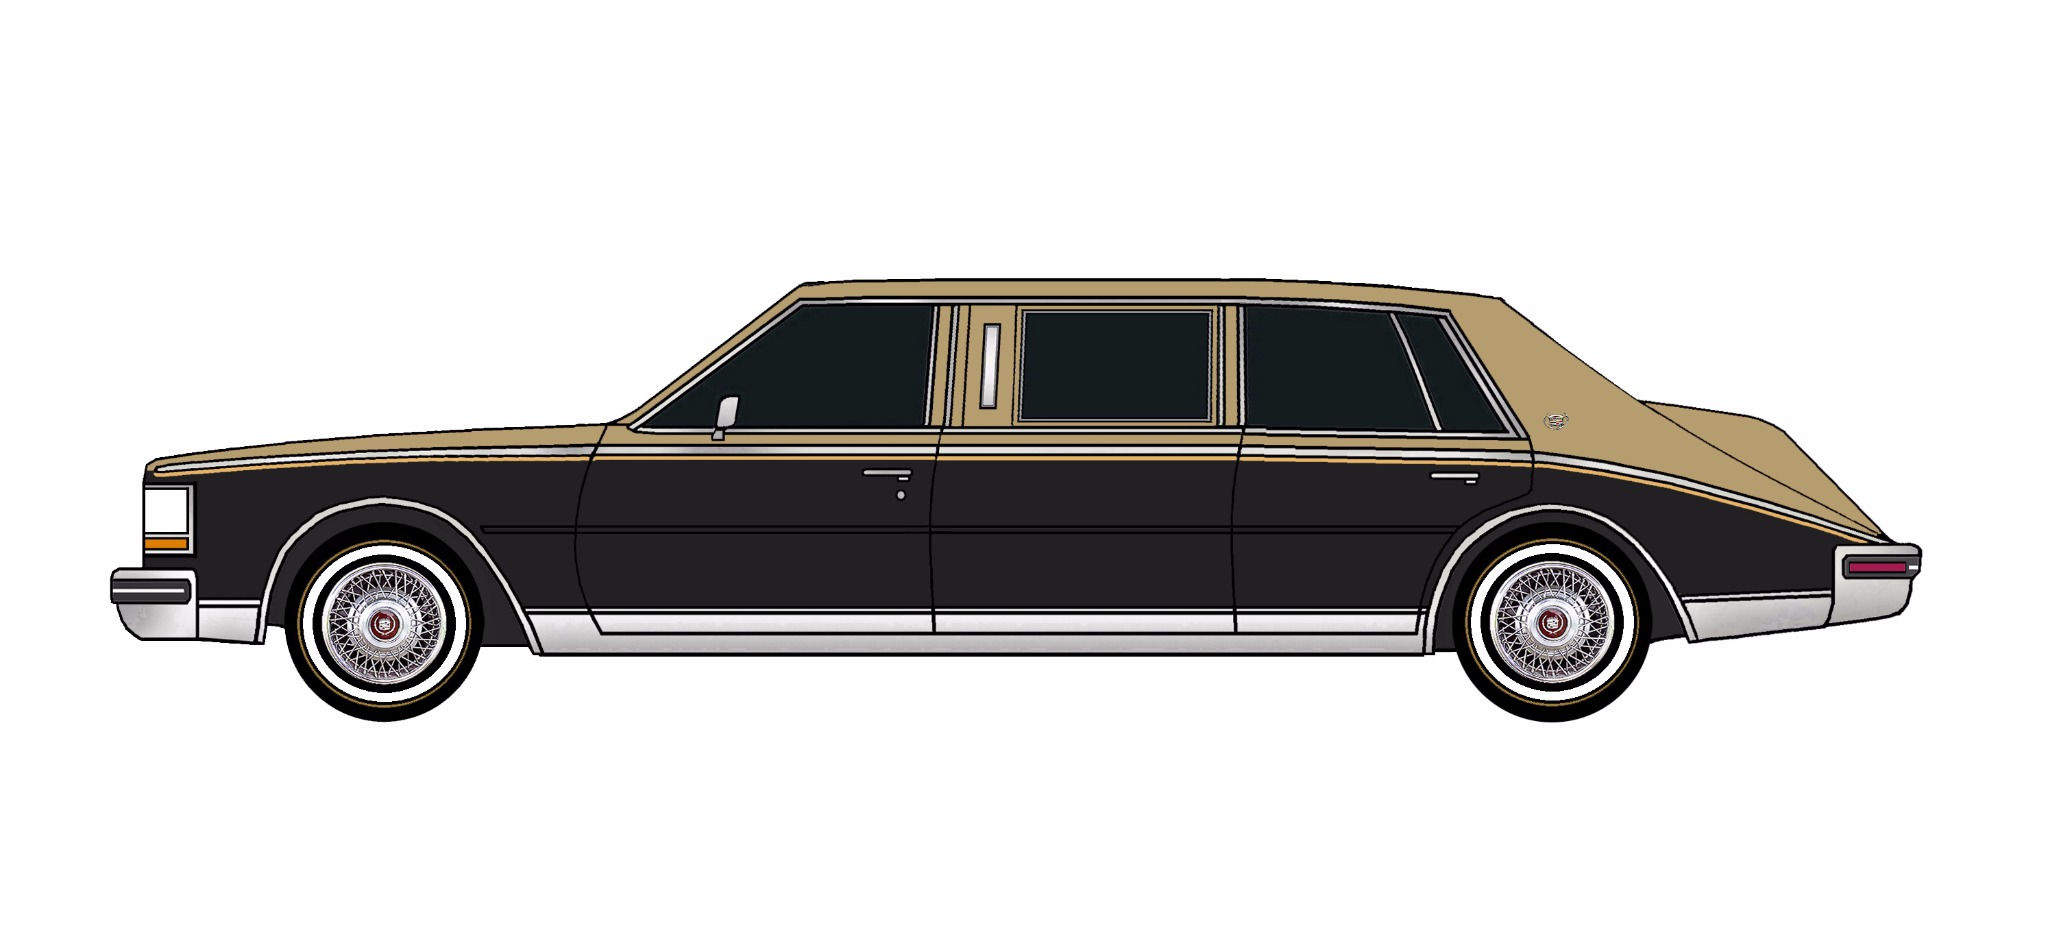 1980 Cadillac Seville Limo BRONZE & BLACK